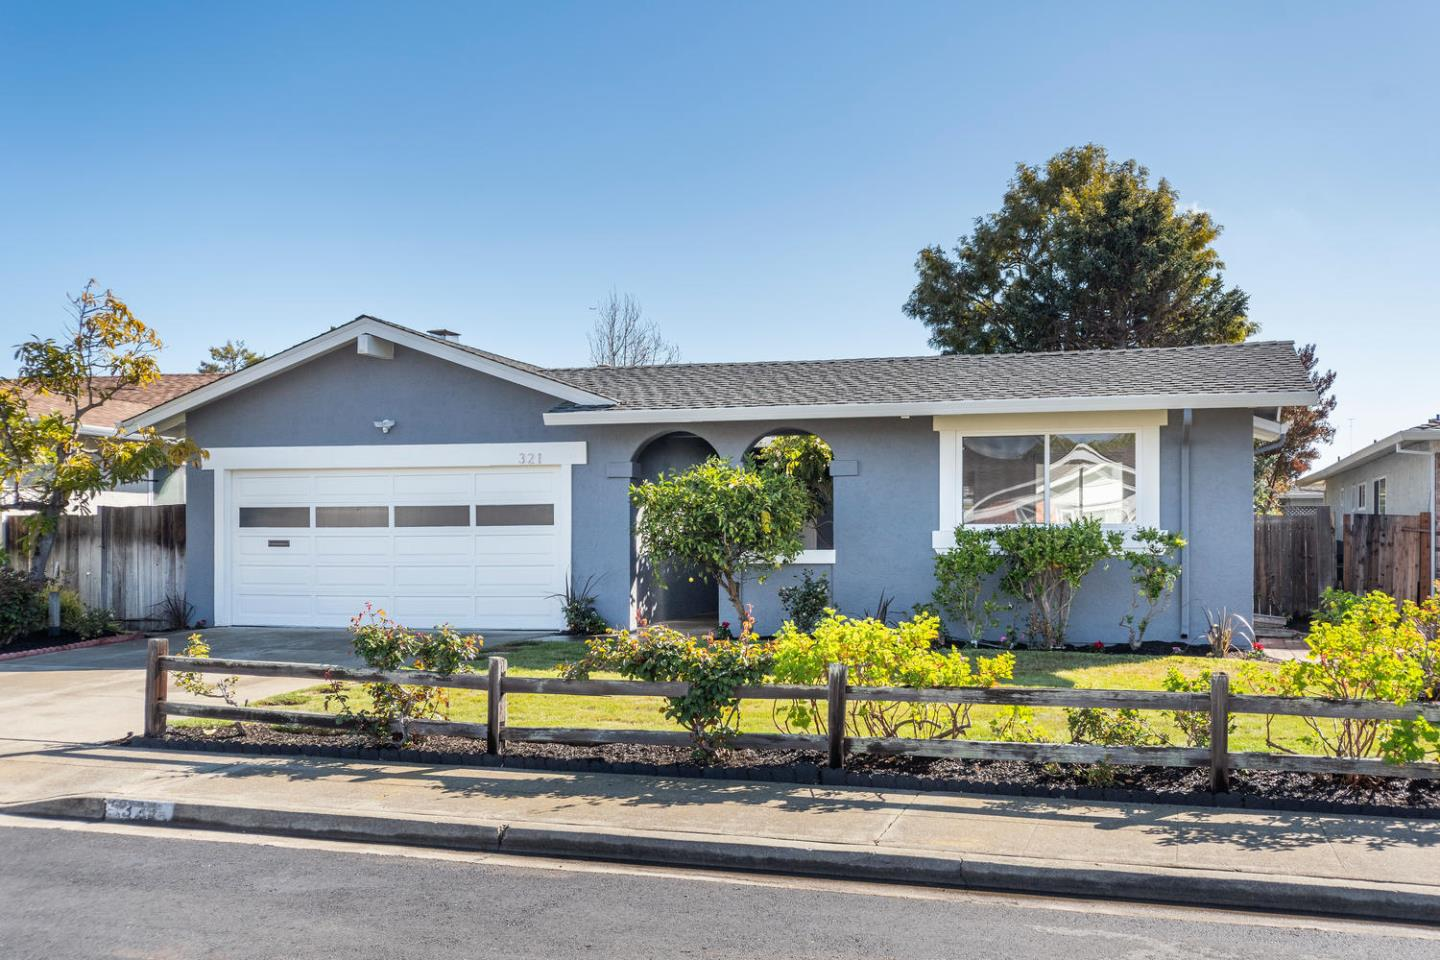 Detail Gallery Image 1 of 1 For 321 Topsail Ct, Foster City, CA 94404 - 3 Beds | 2 Baths